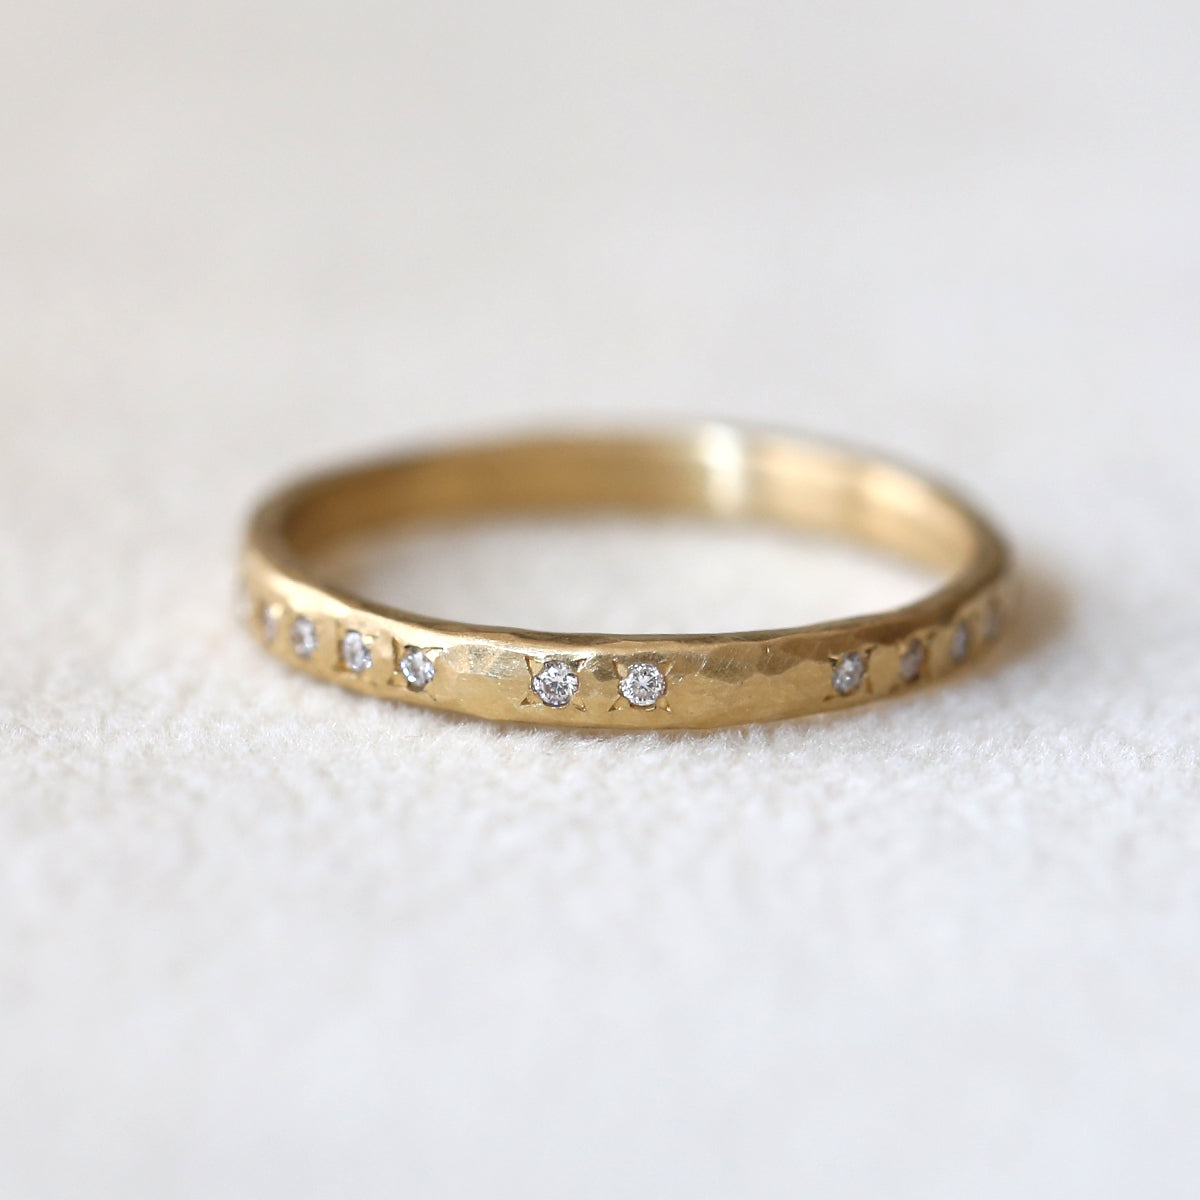 Hammered eternity band